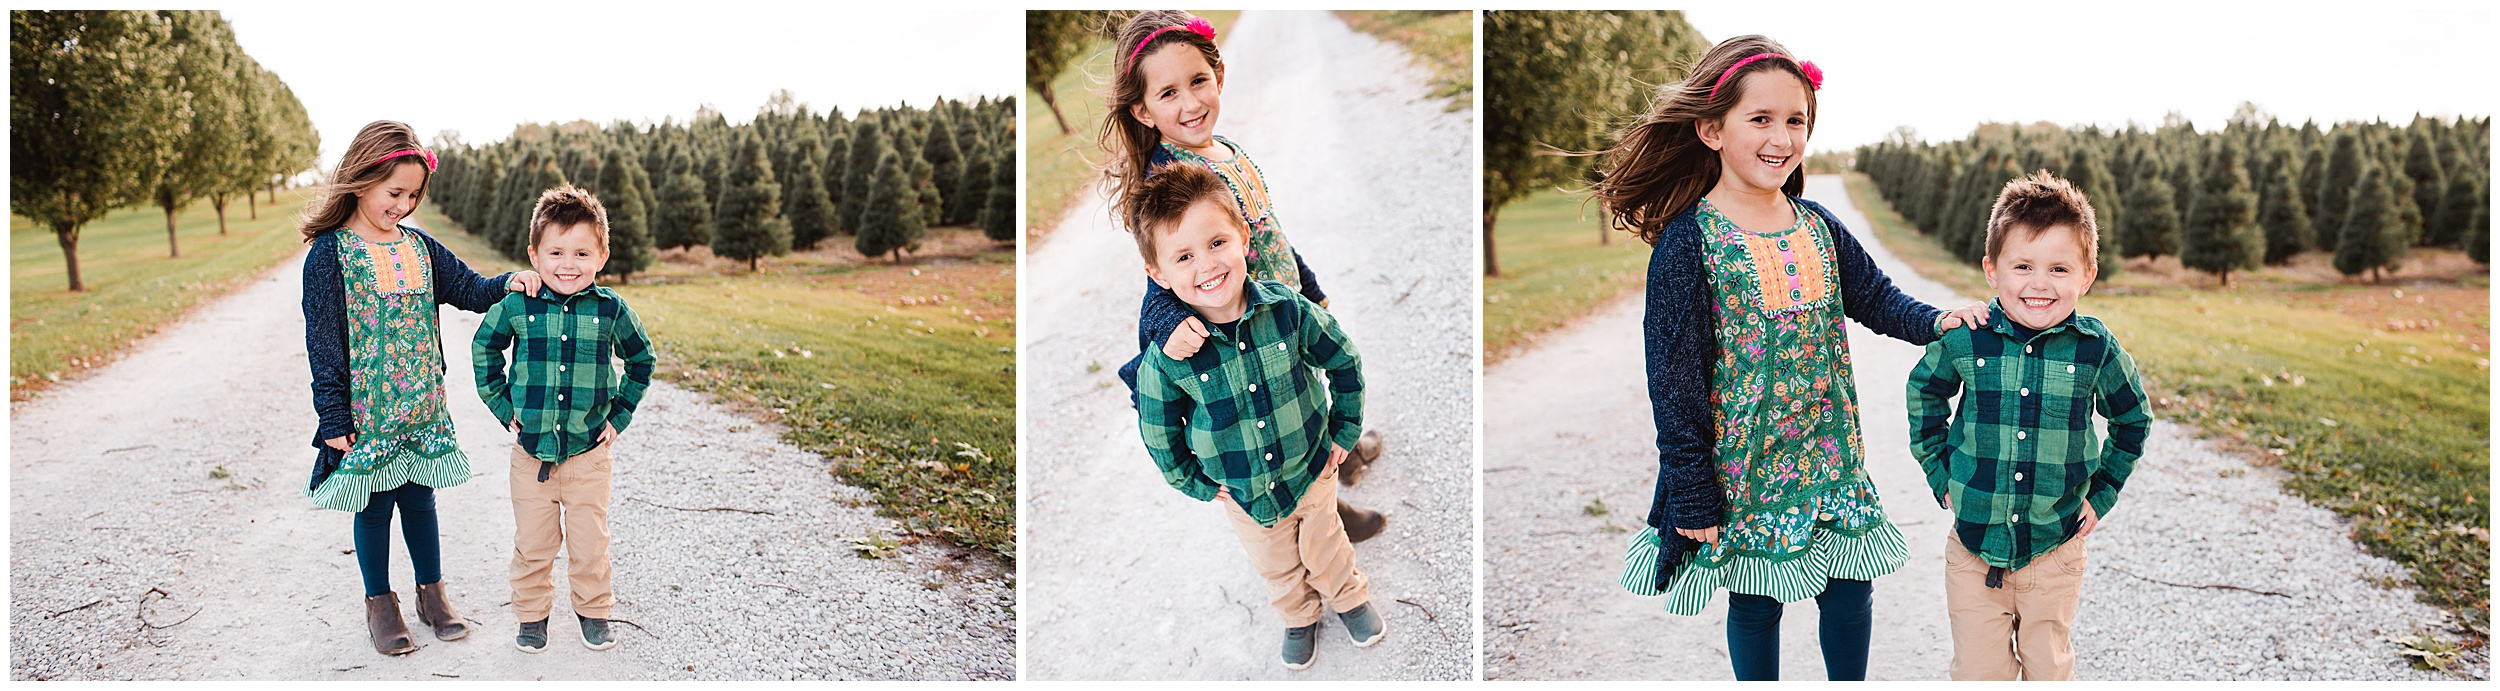 Indianapolis Family Photographer_Kelli White Photography_IG_0213.jpg